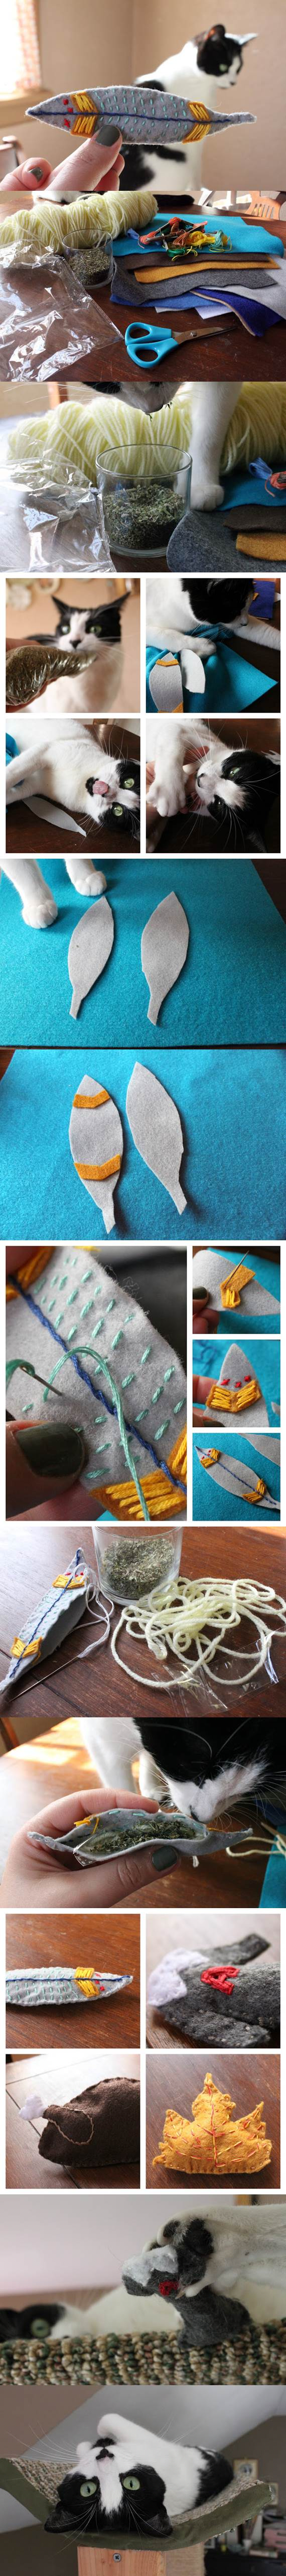 DIY Embroidered Felt Catnip Toys 2